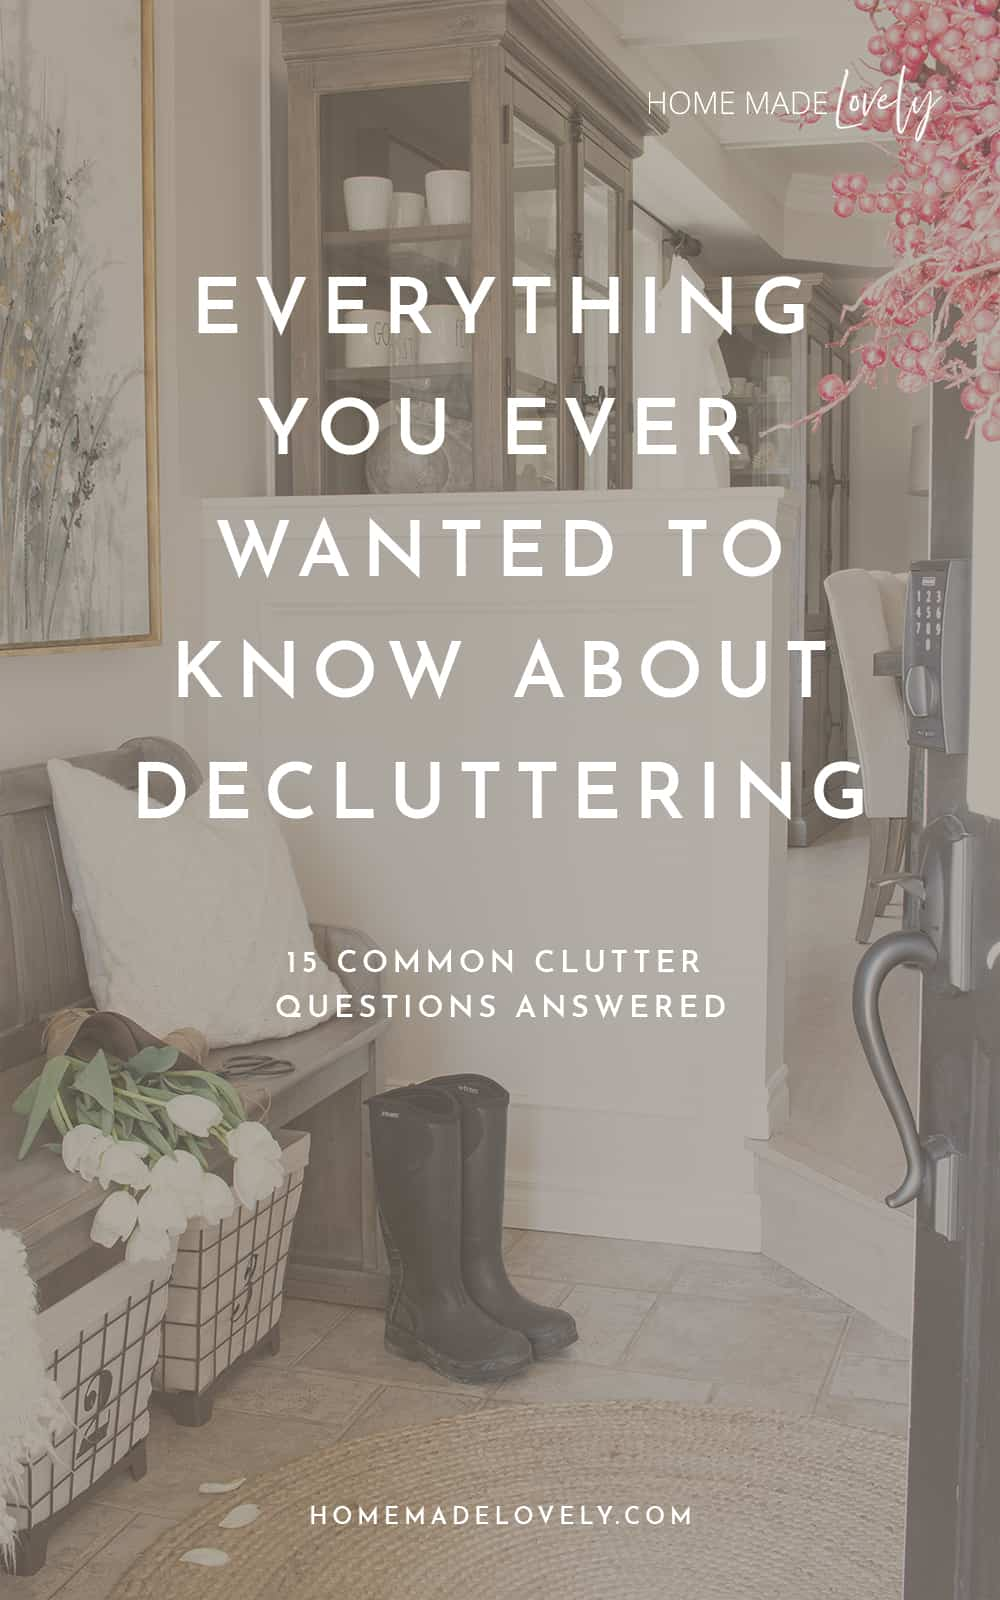 everything you ever wanted to know about decluttering entry with text overlay